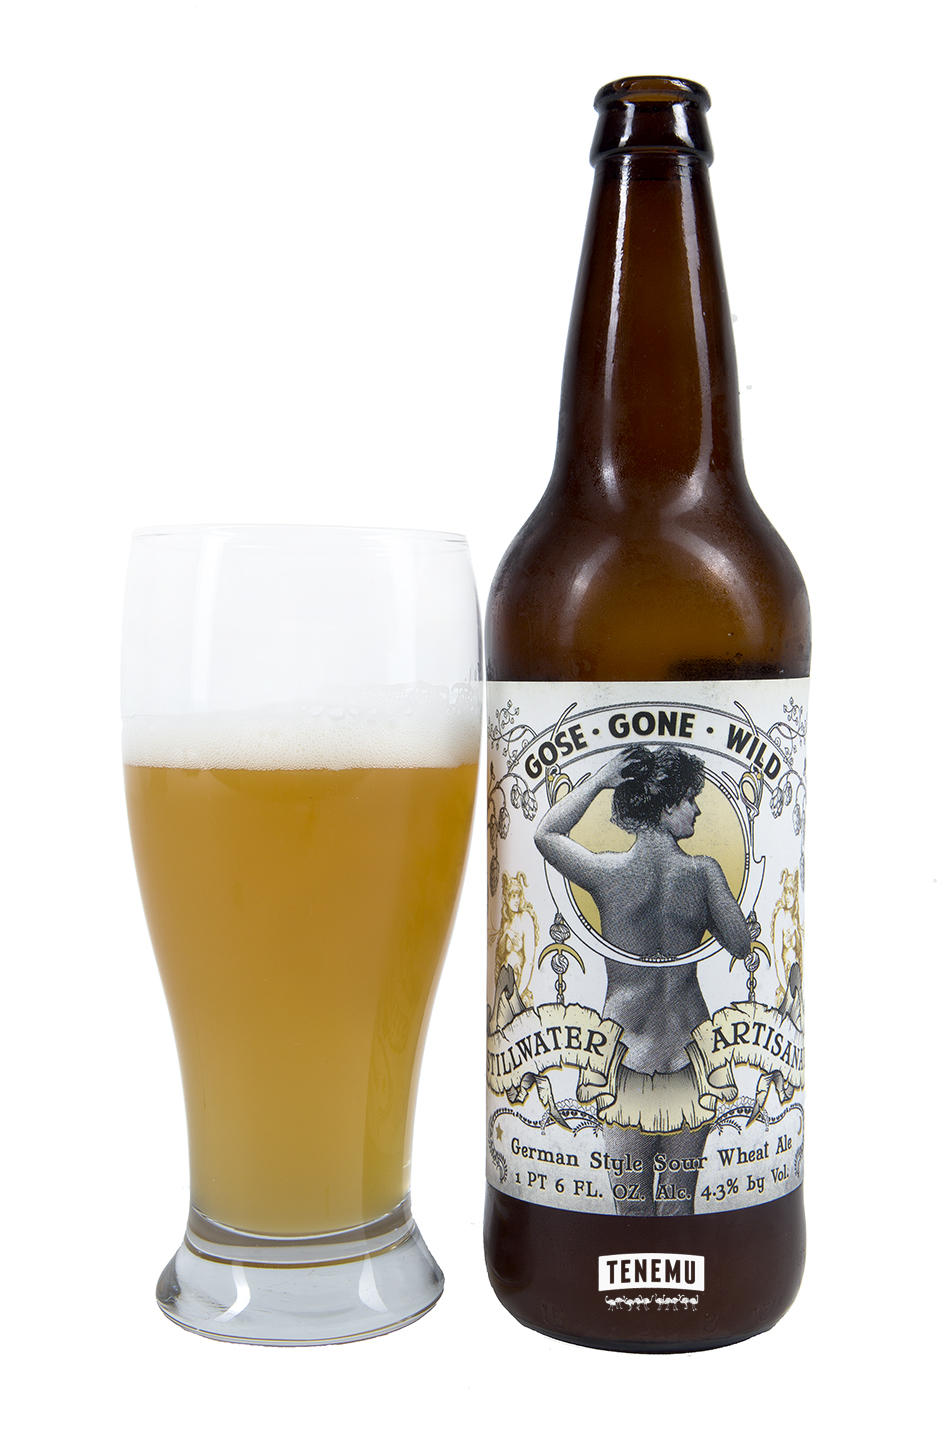 Stillwater Artisanal Ales Westbrook Brewing Gose Gone Wild